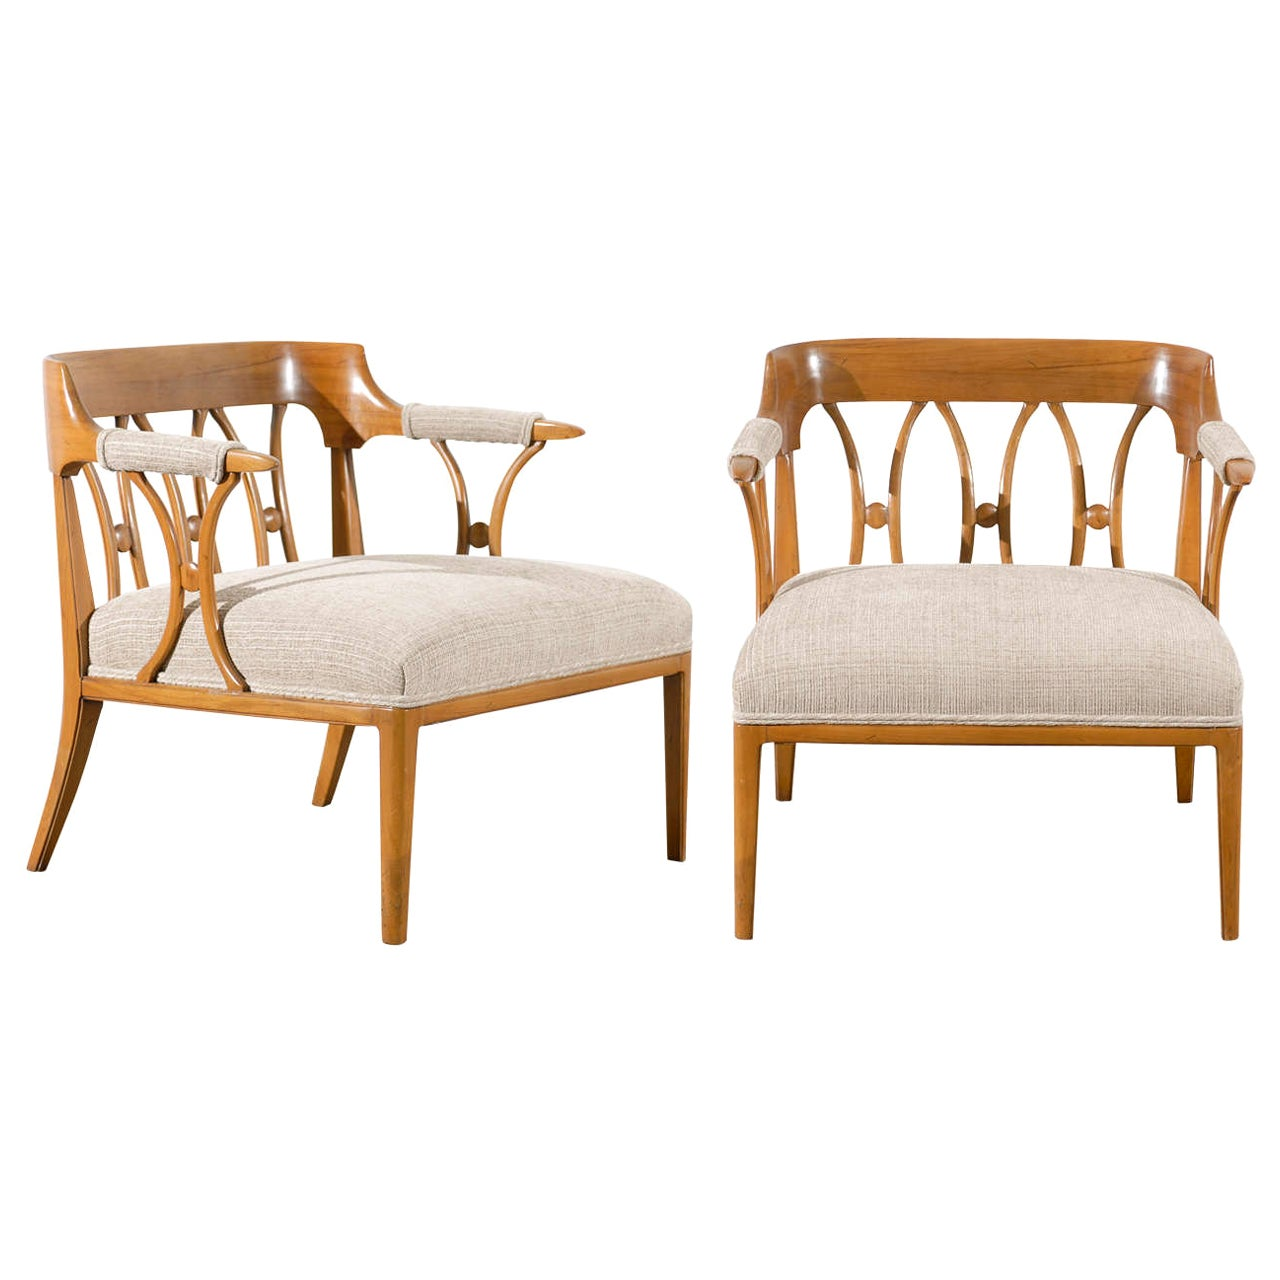 Modern Neoclassical Loungers by Lubberts and Mulder for Tomlinson, circa 1958